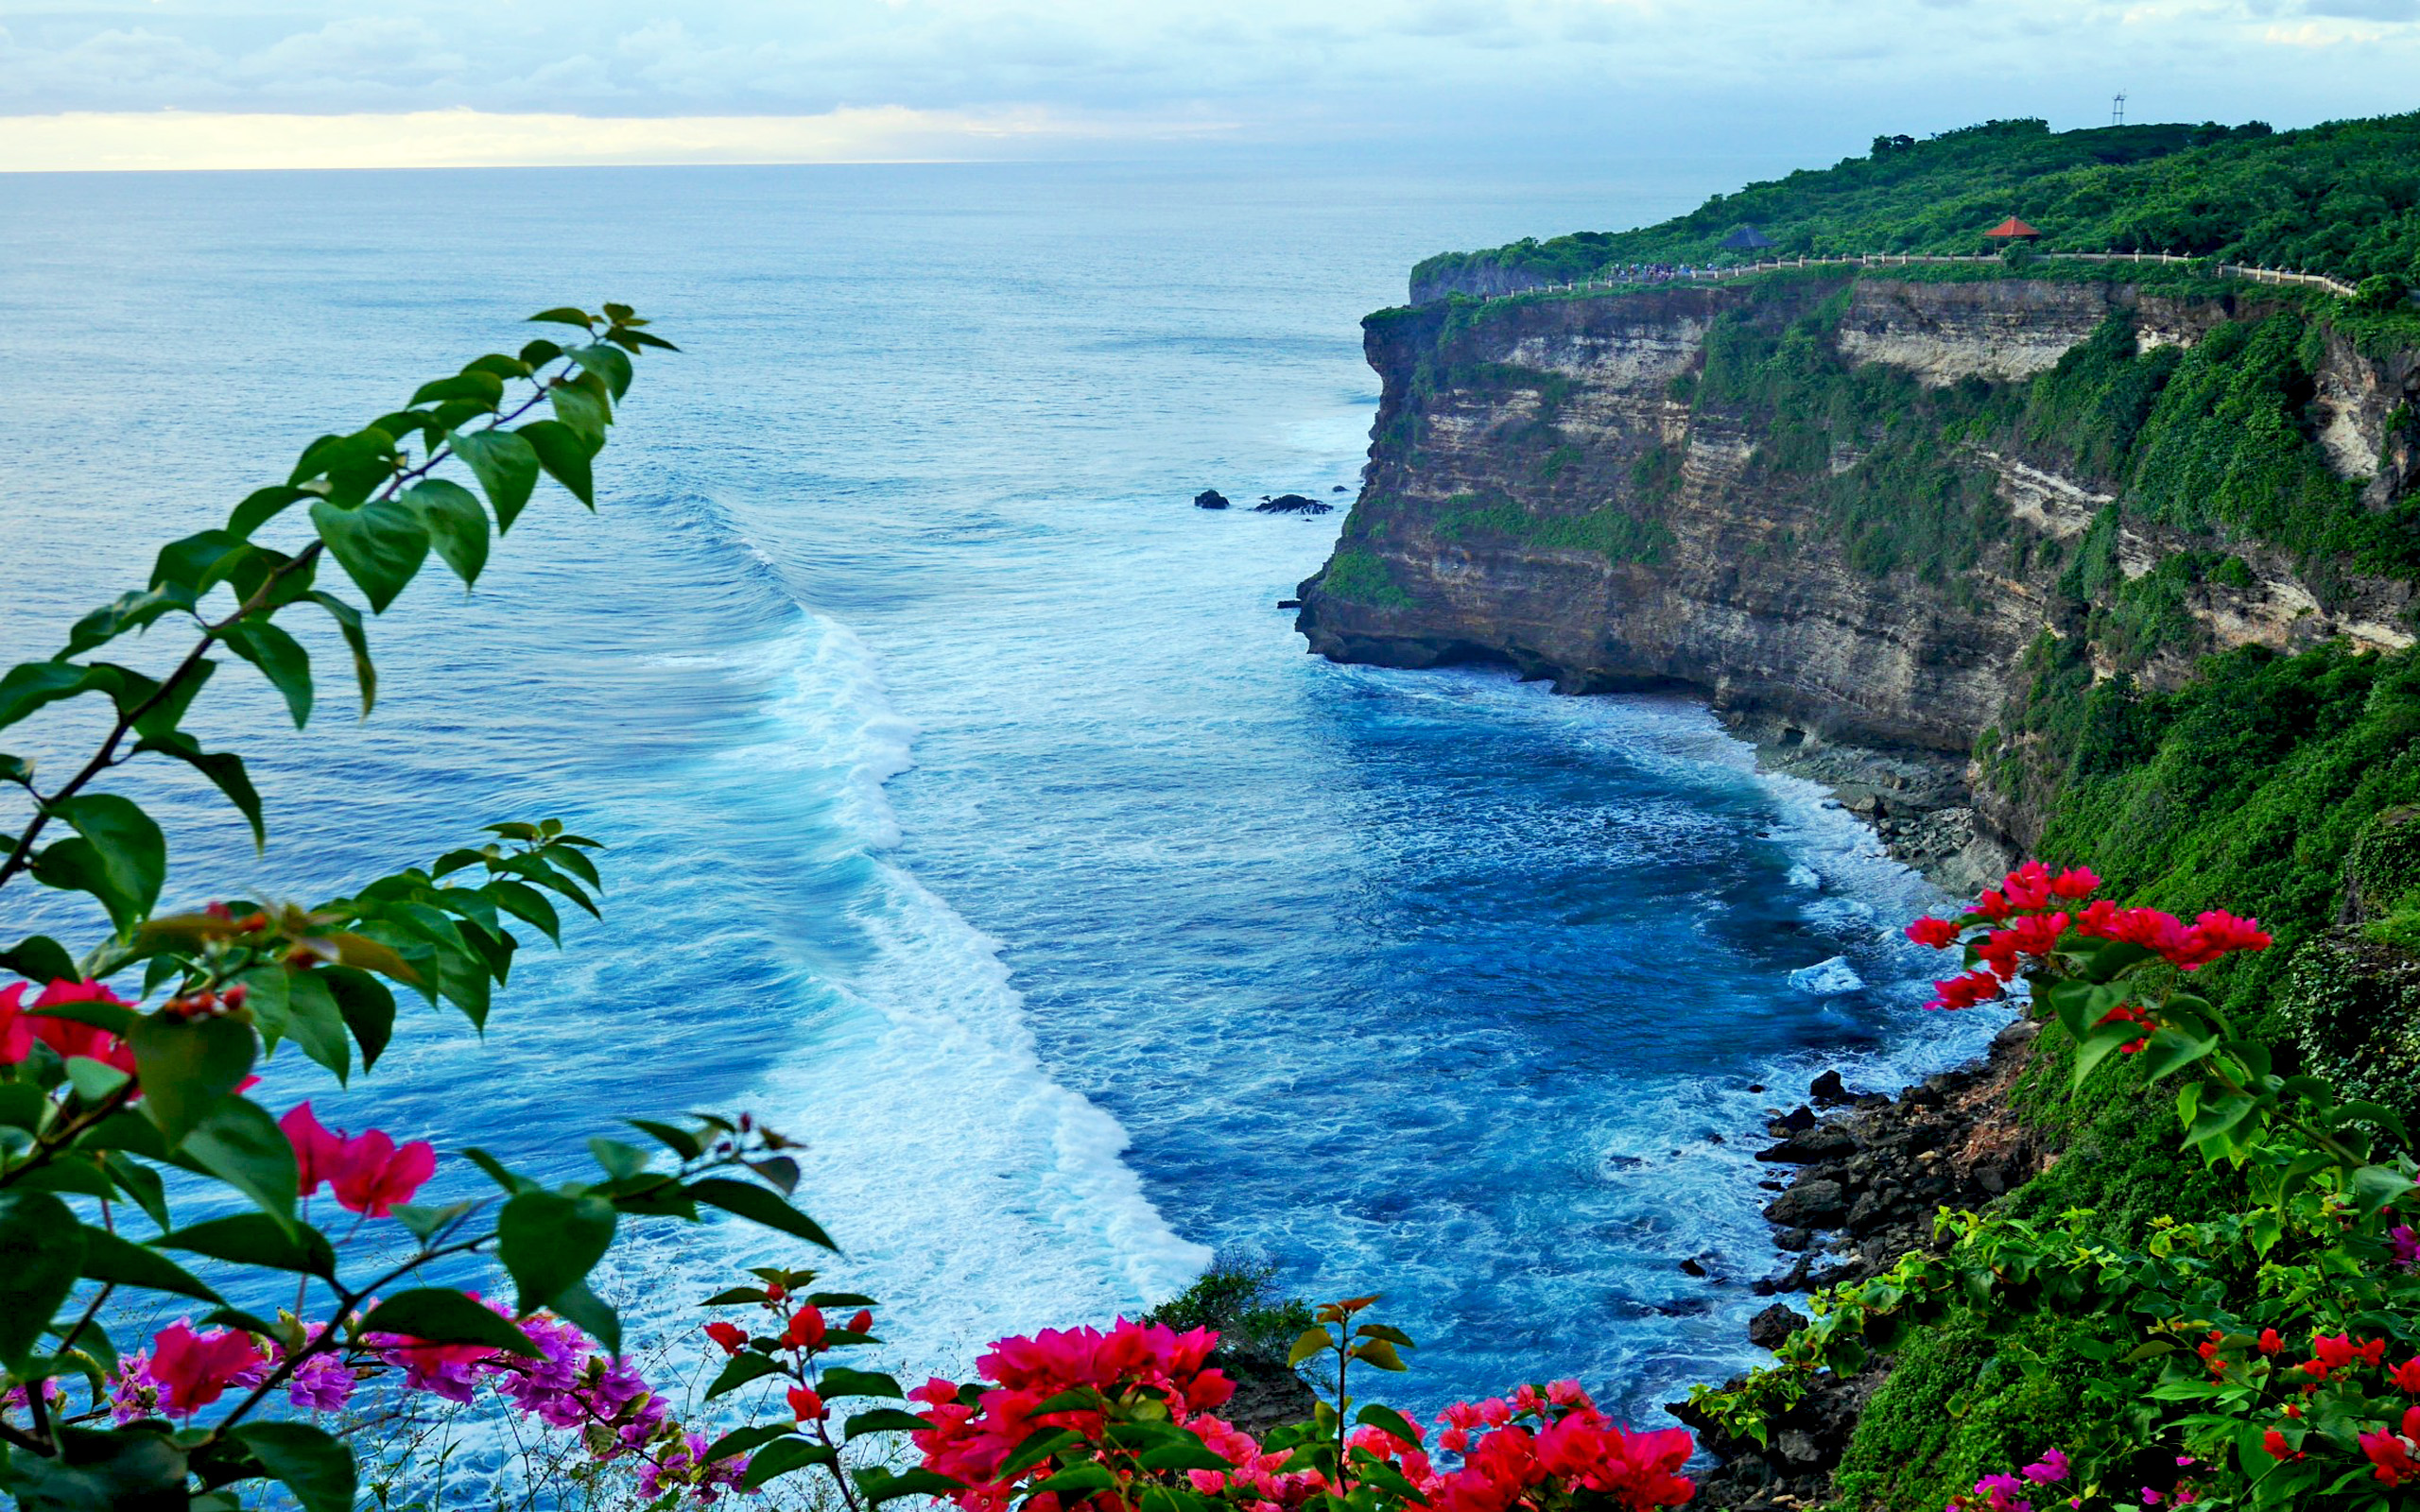 Hd Indonesia Bali 1121164 Hd Wallpaper Backgrounds